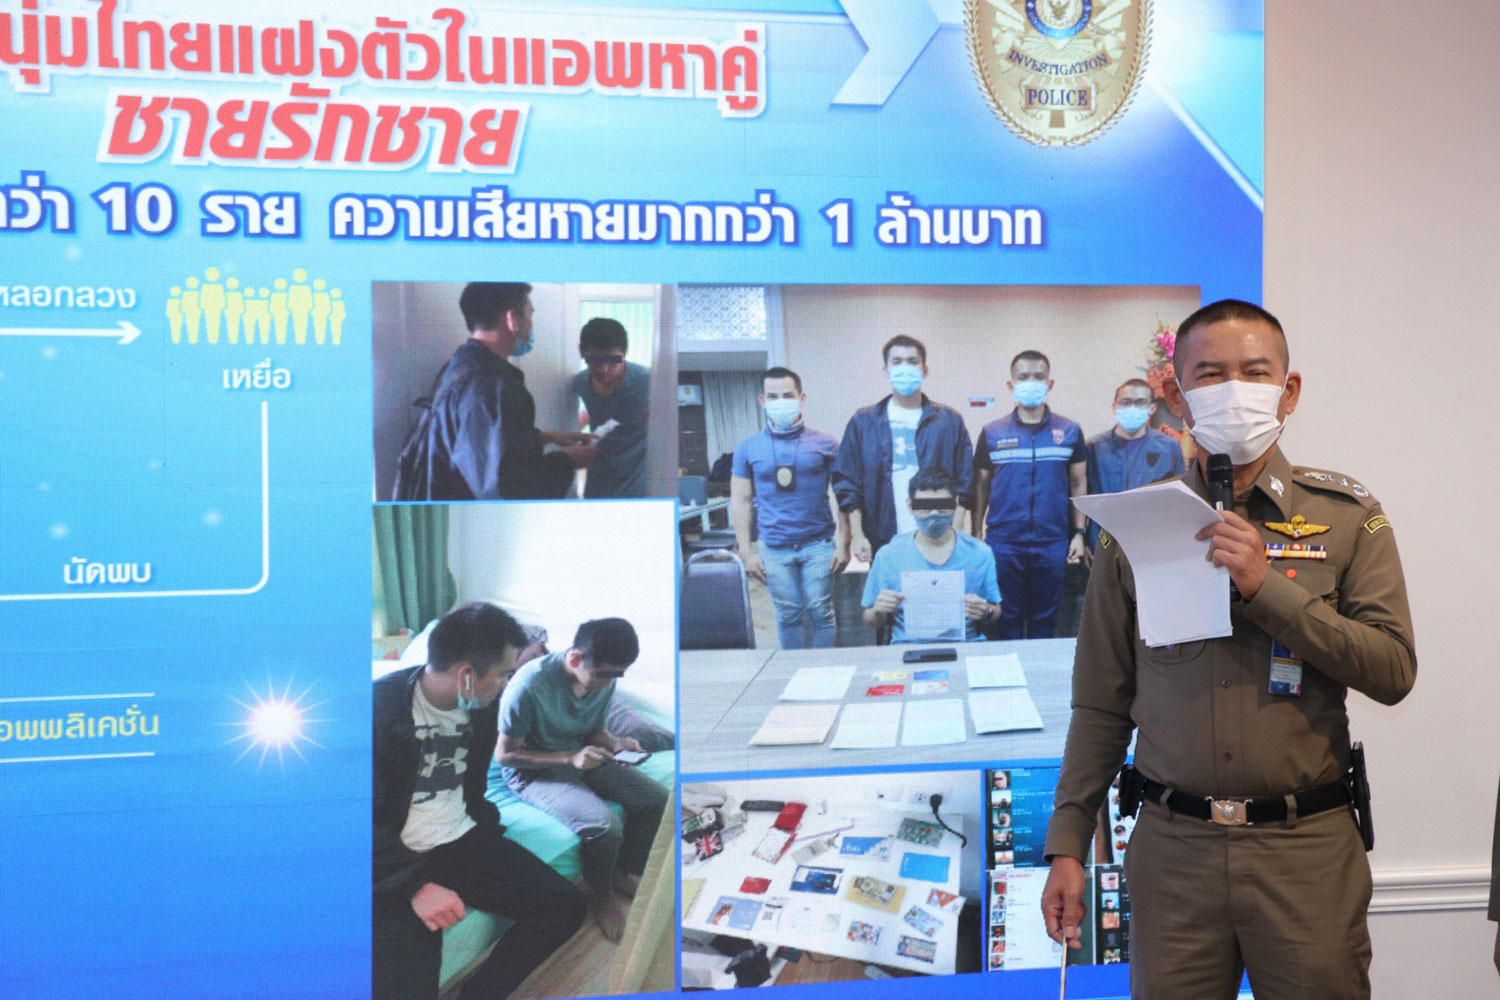 Immigration Bureau chief Pol Lt Gen Sompong Chingduang gives details of the arrest of a 29-year-old Thai man accused of stealing from wealthy foreign men he picked up on gay dating apps - but withholds the man's full name (Photo supplied)